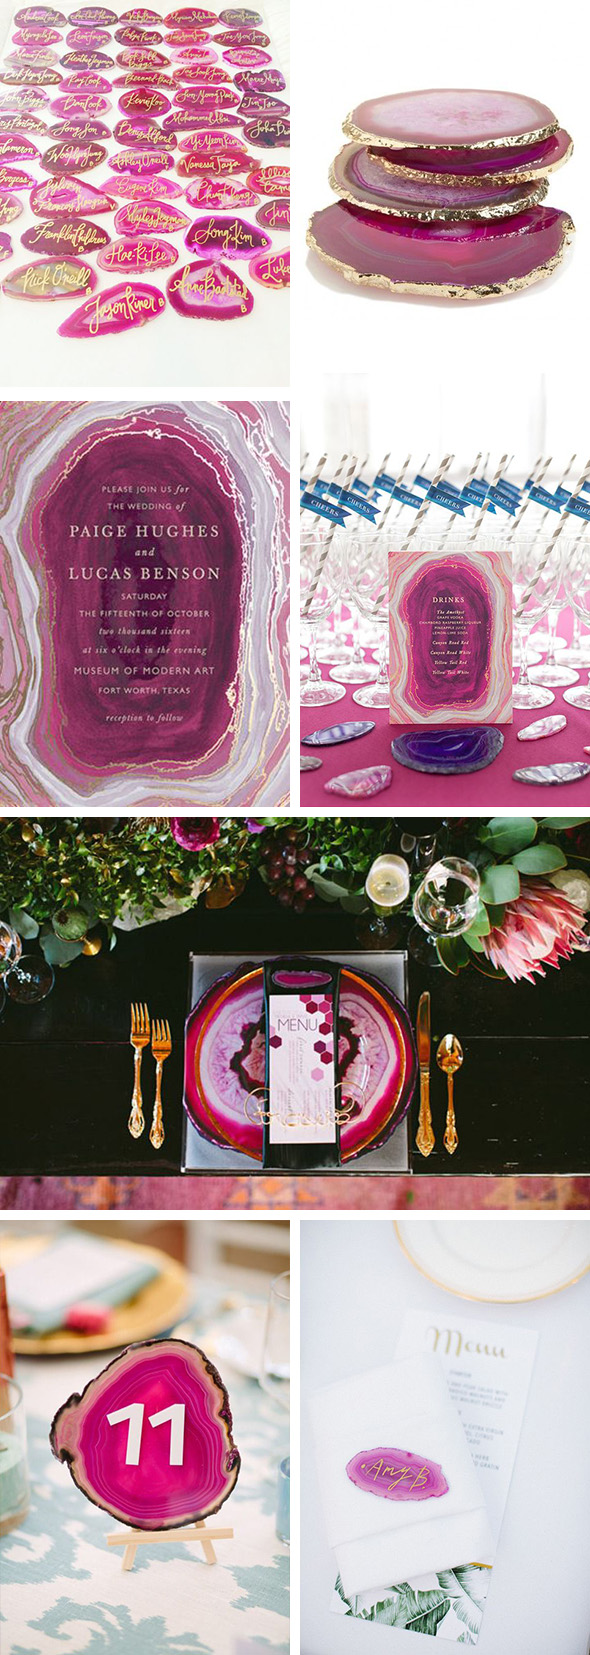 pink agate wedding details